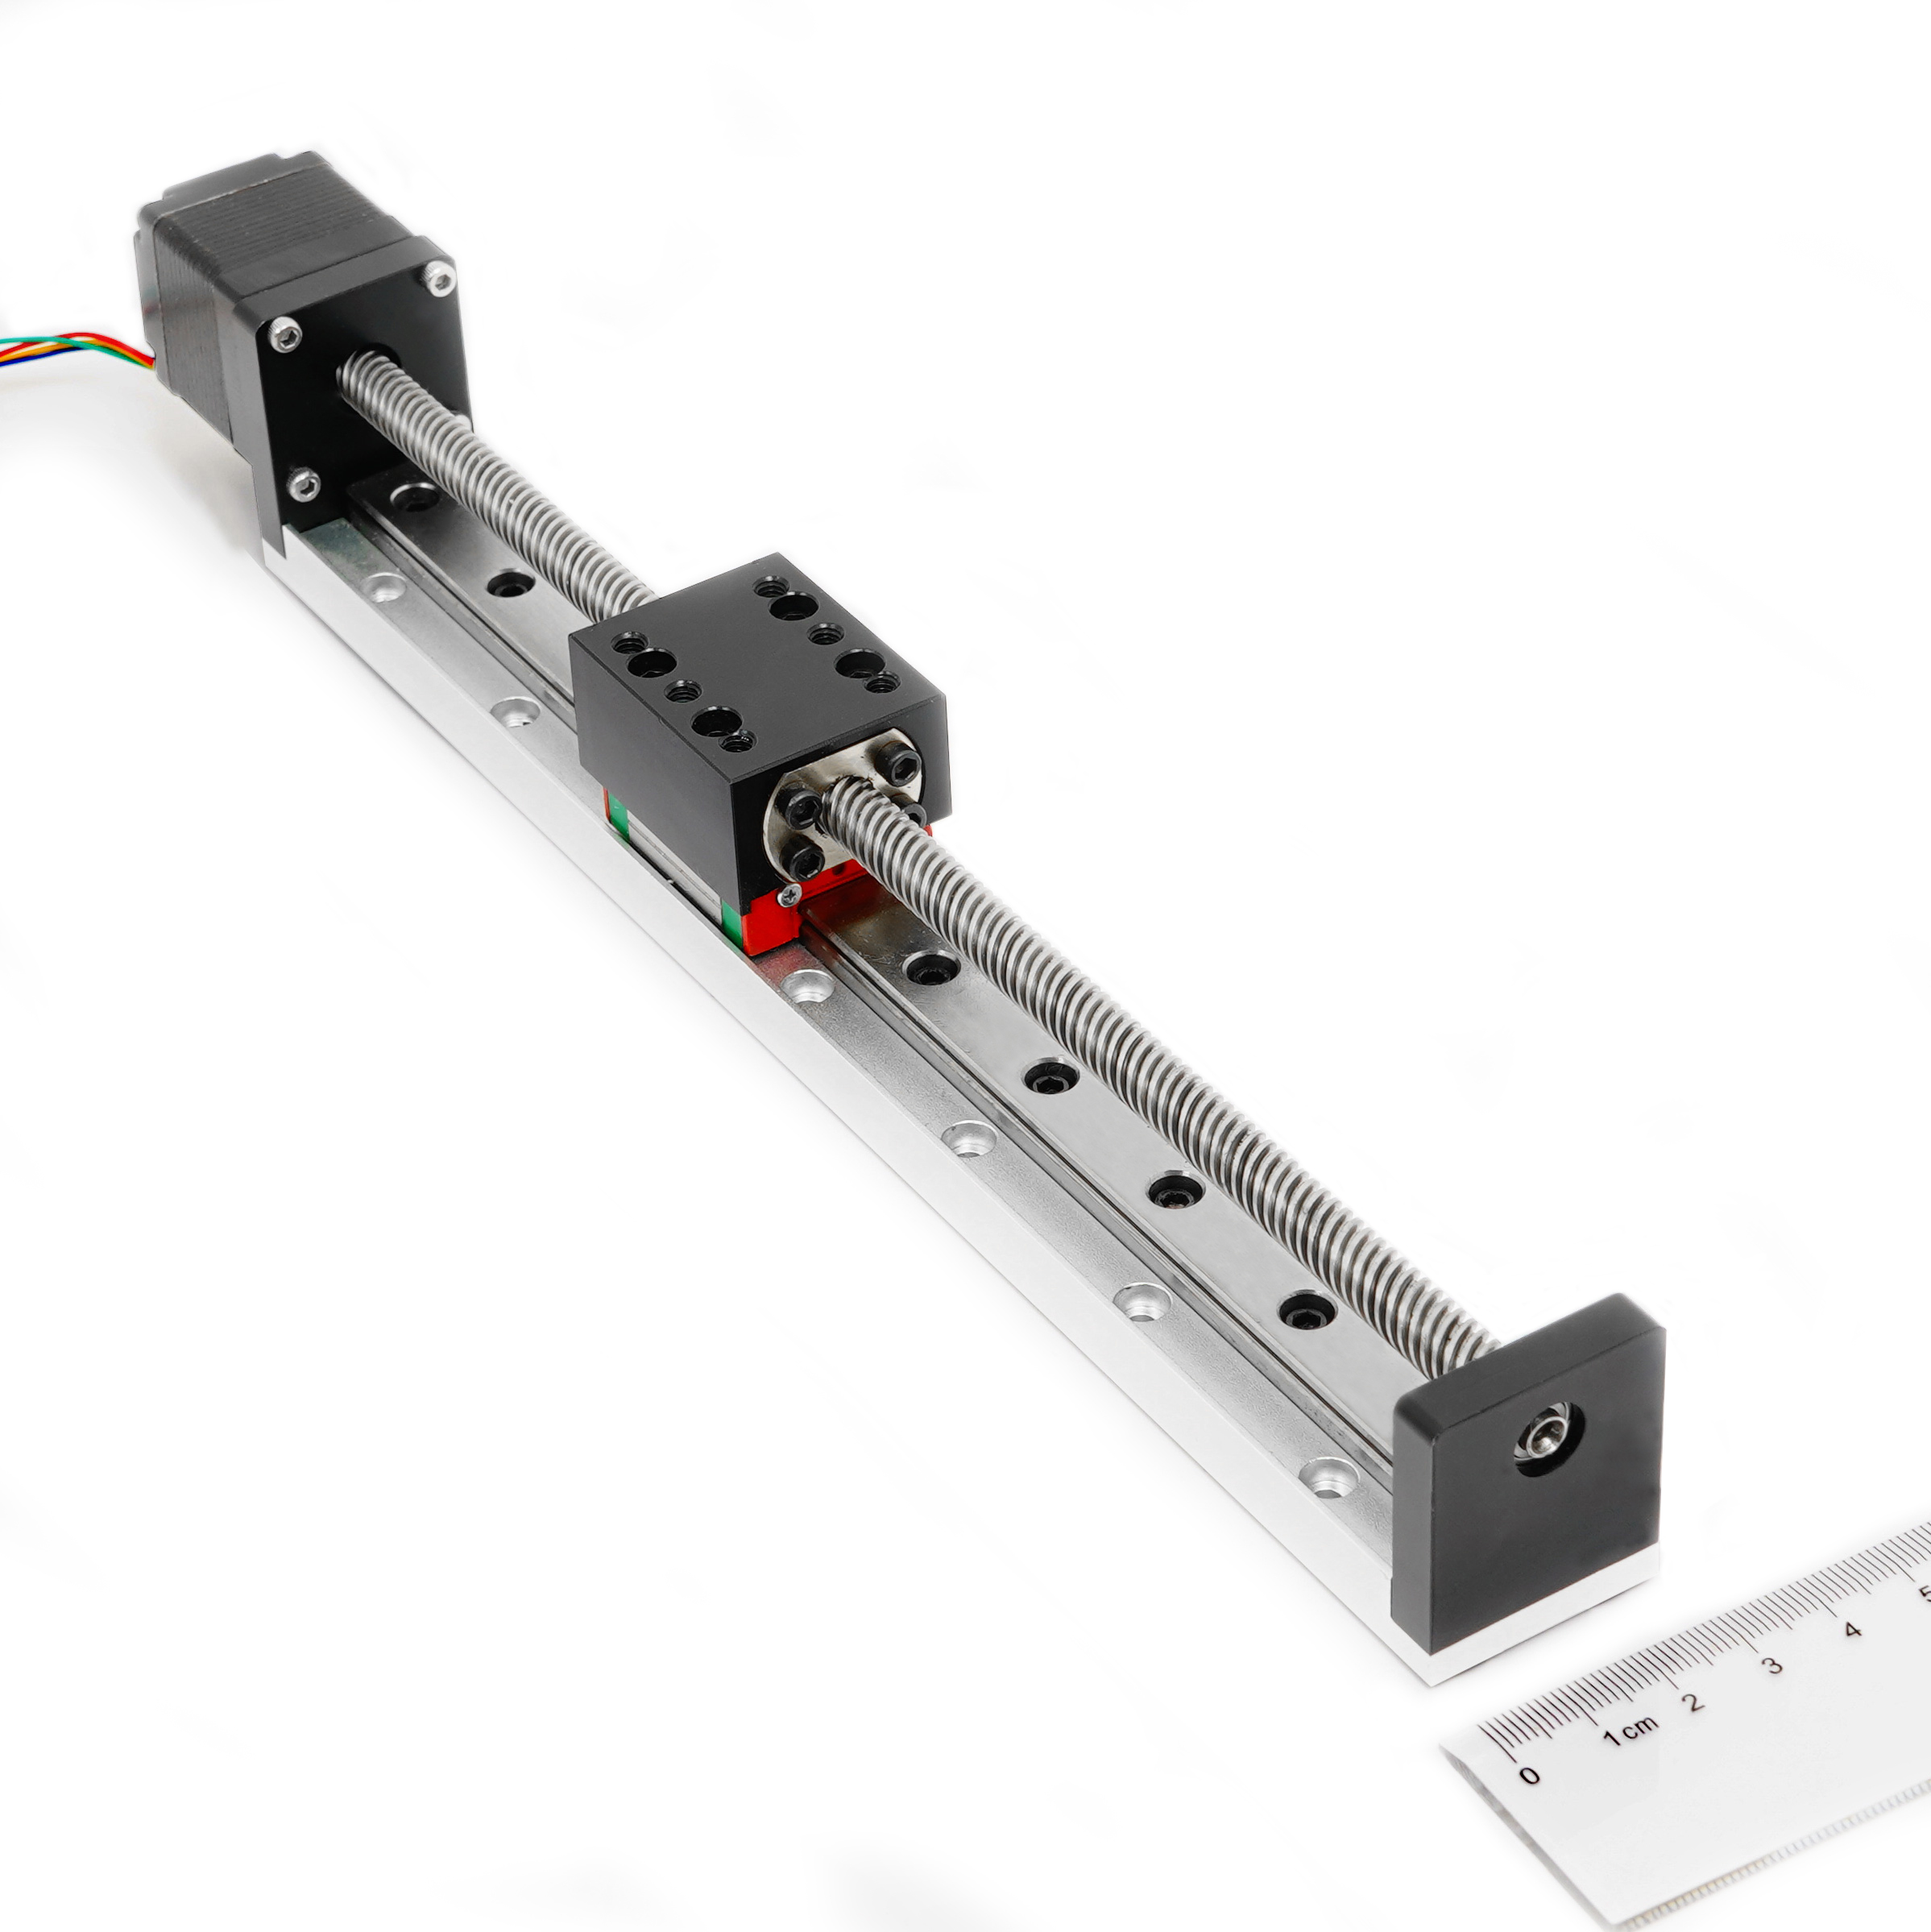 Good quality 30mm guide width miniature linear guide system 100mm length customizedGood quality 30mm guide width miniature linear guide system 100mm length customized